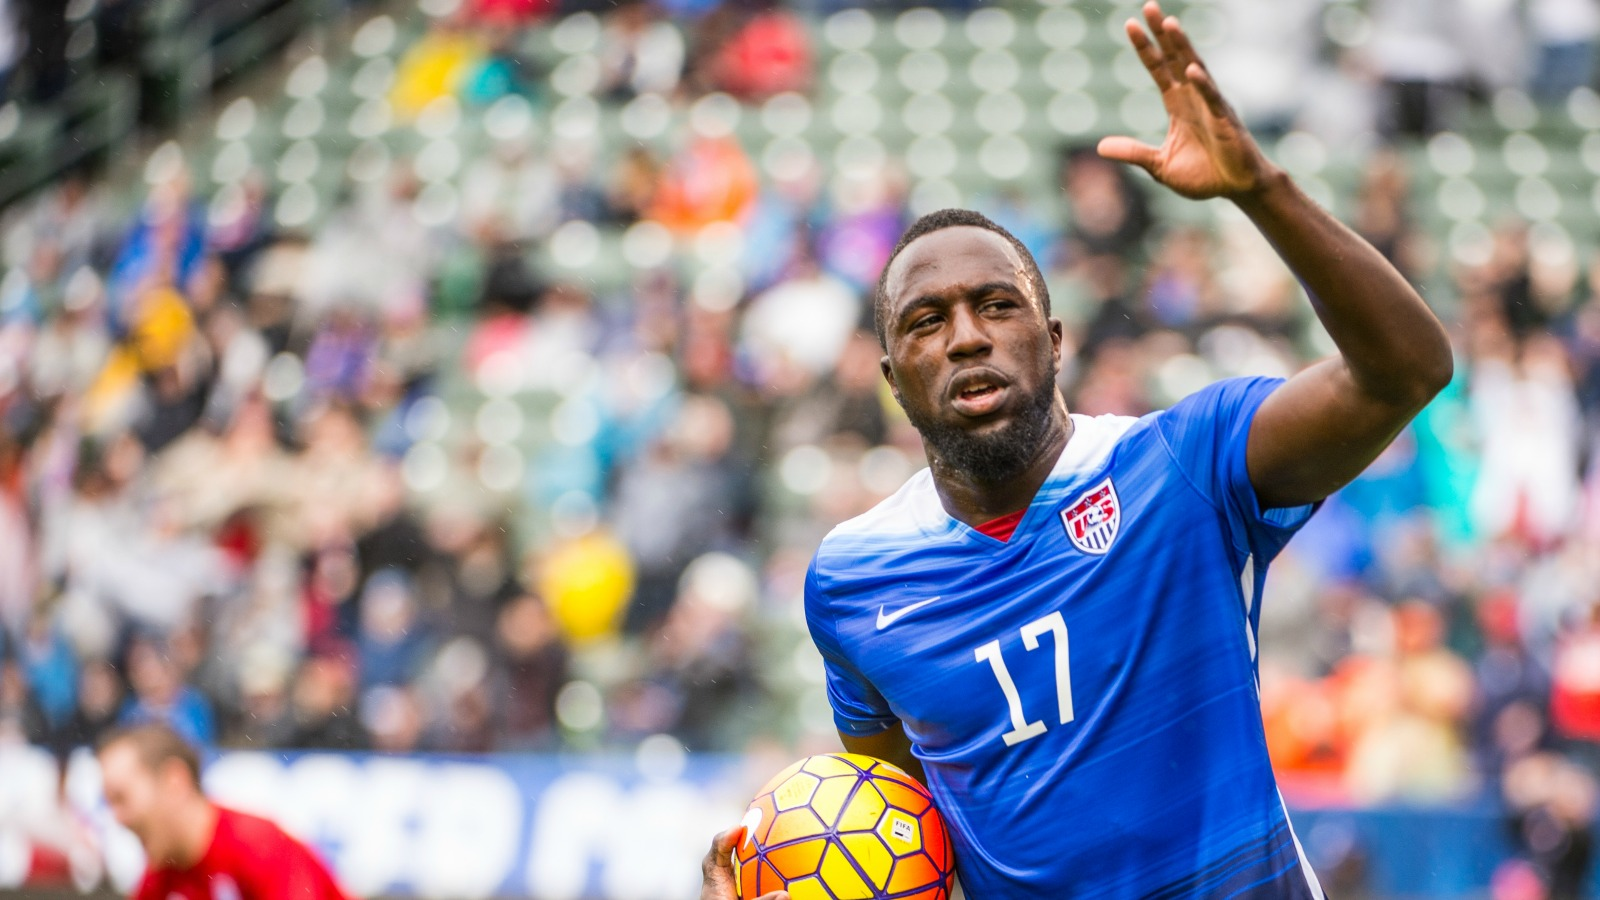 Watch Jozy Altidore become the USMNT's No. 3 all-time leading goal scorer